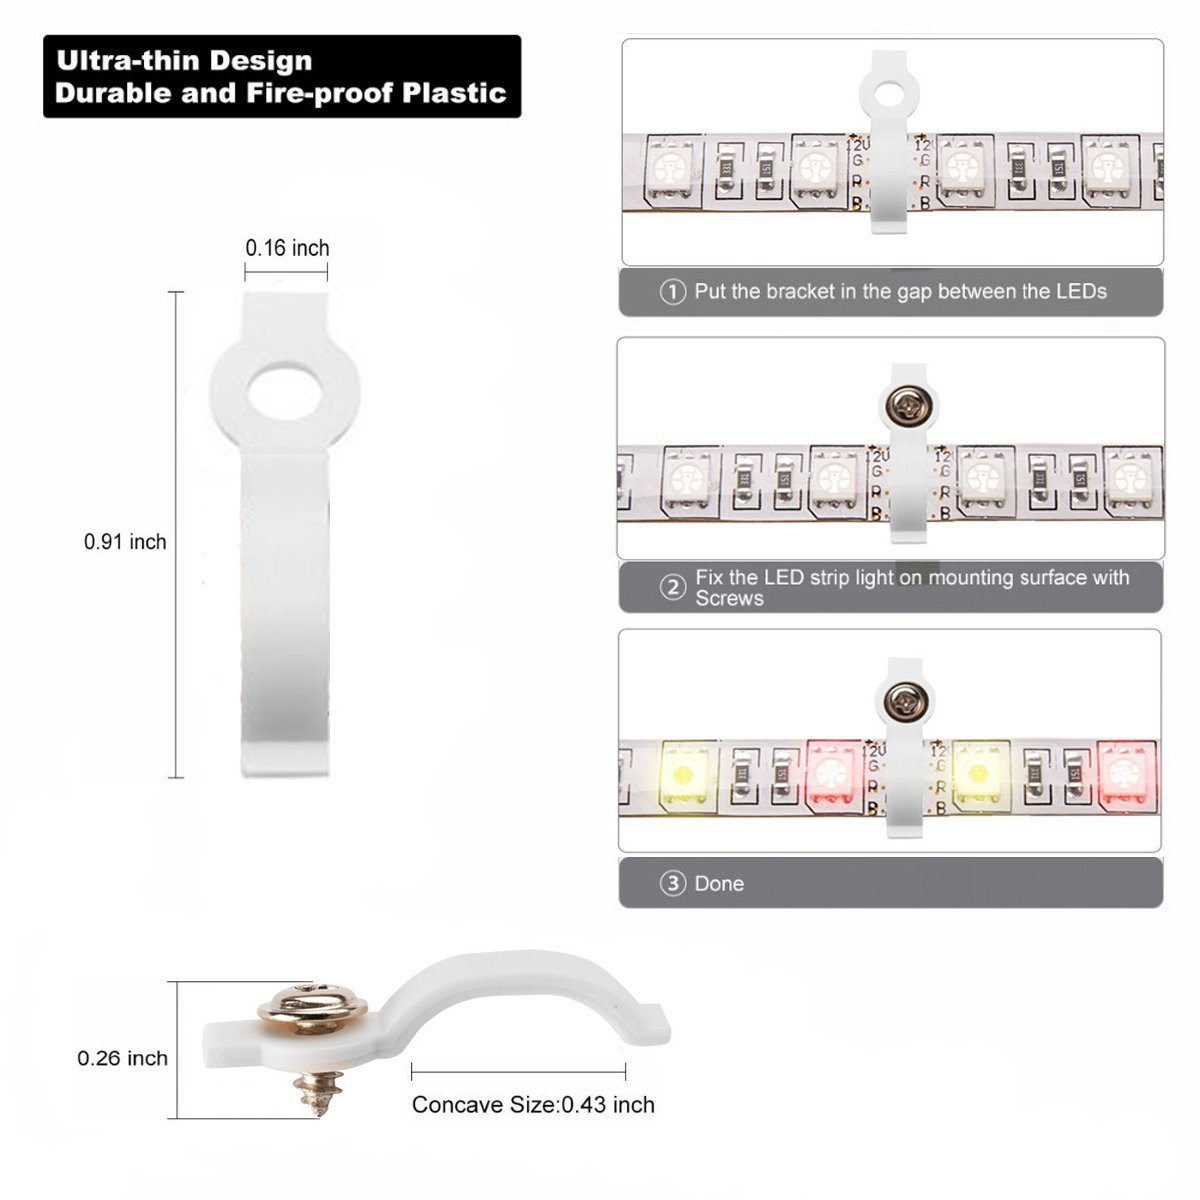 5050 4Pin LED Strip Connector Kit - 10mm RGB LED Connector Kit includes 32.8FT RGB Extension Cable, 10x LED Strip Jumper, 10x L Shape Connectors, 10x Gapless Connectors, 20x LED Strip Clips by iCreating (Image #7)